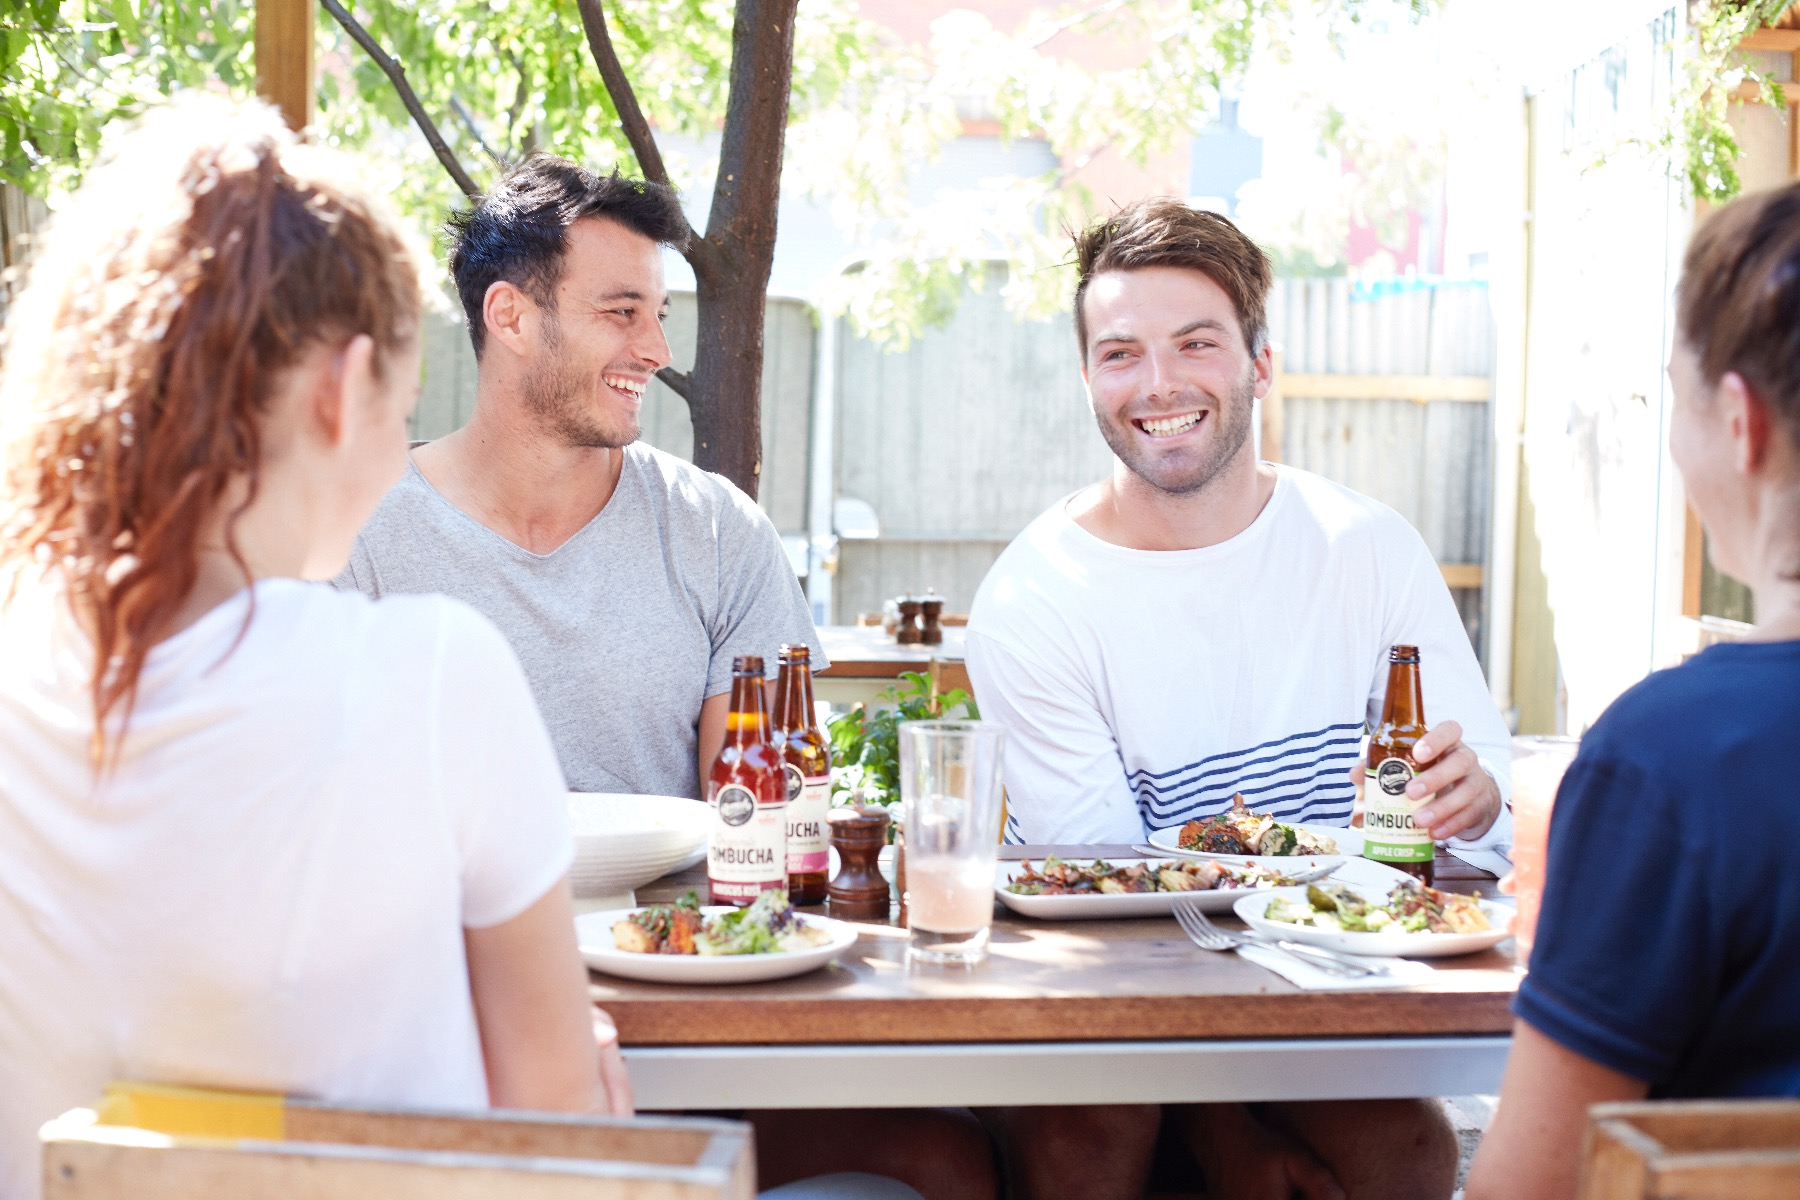 NMFC AFL stars love a Remedy Kombucha